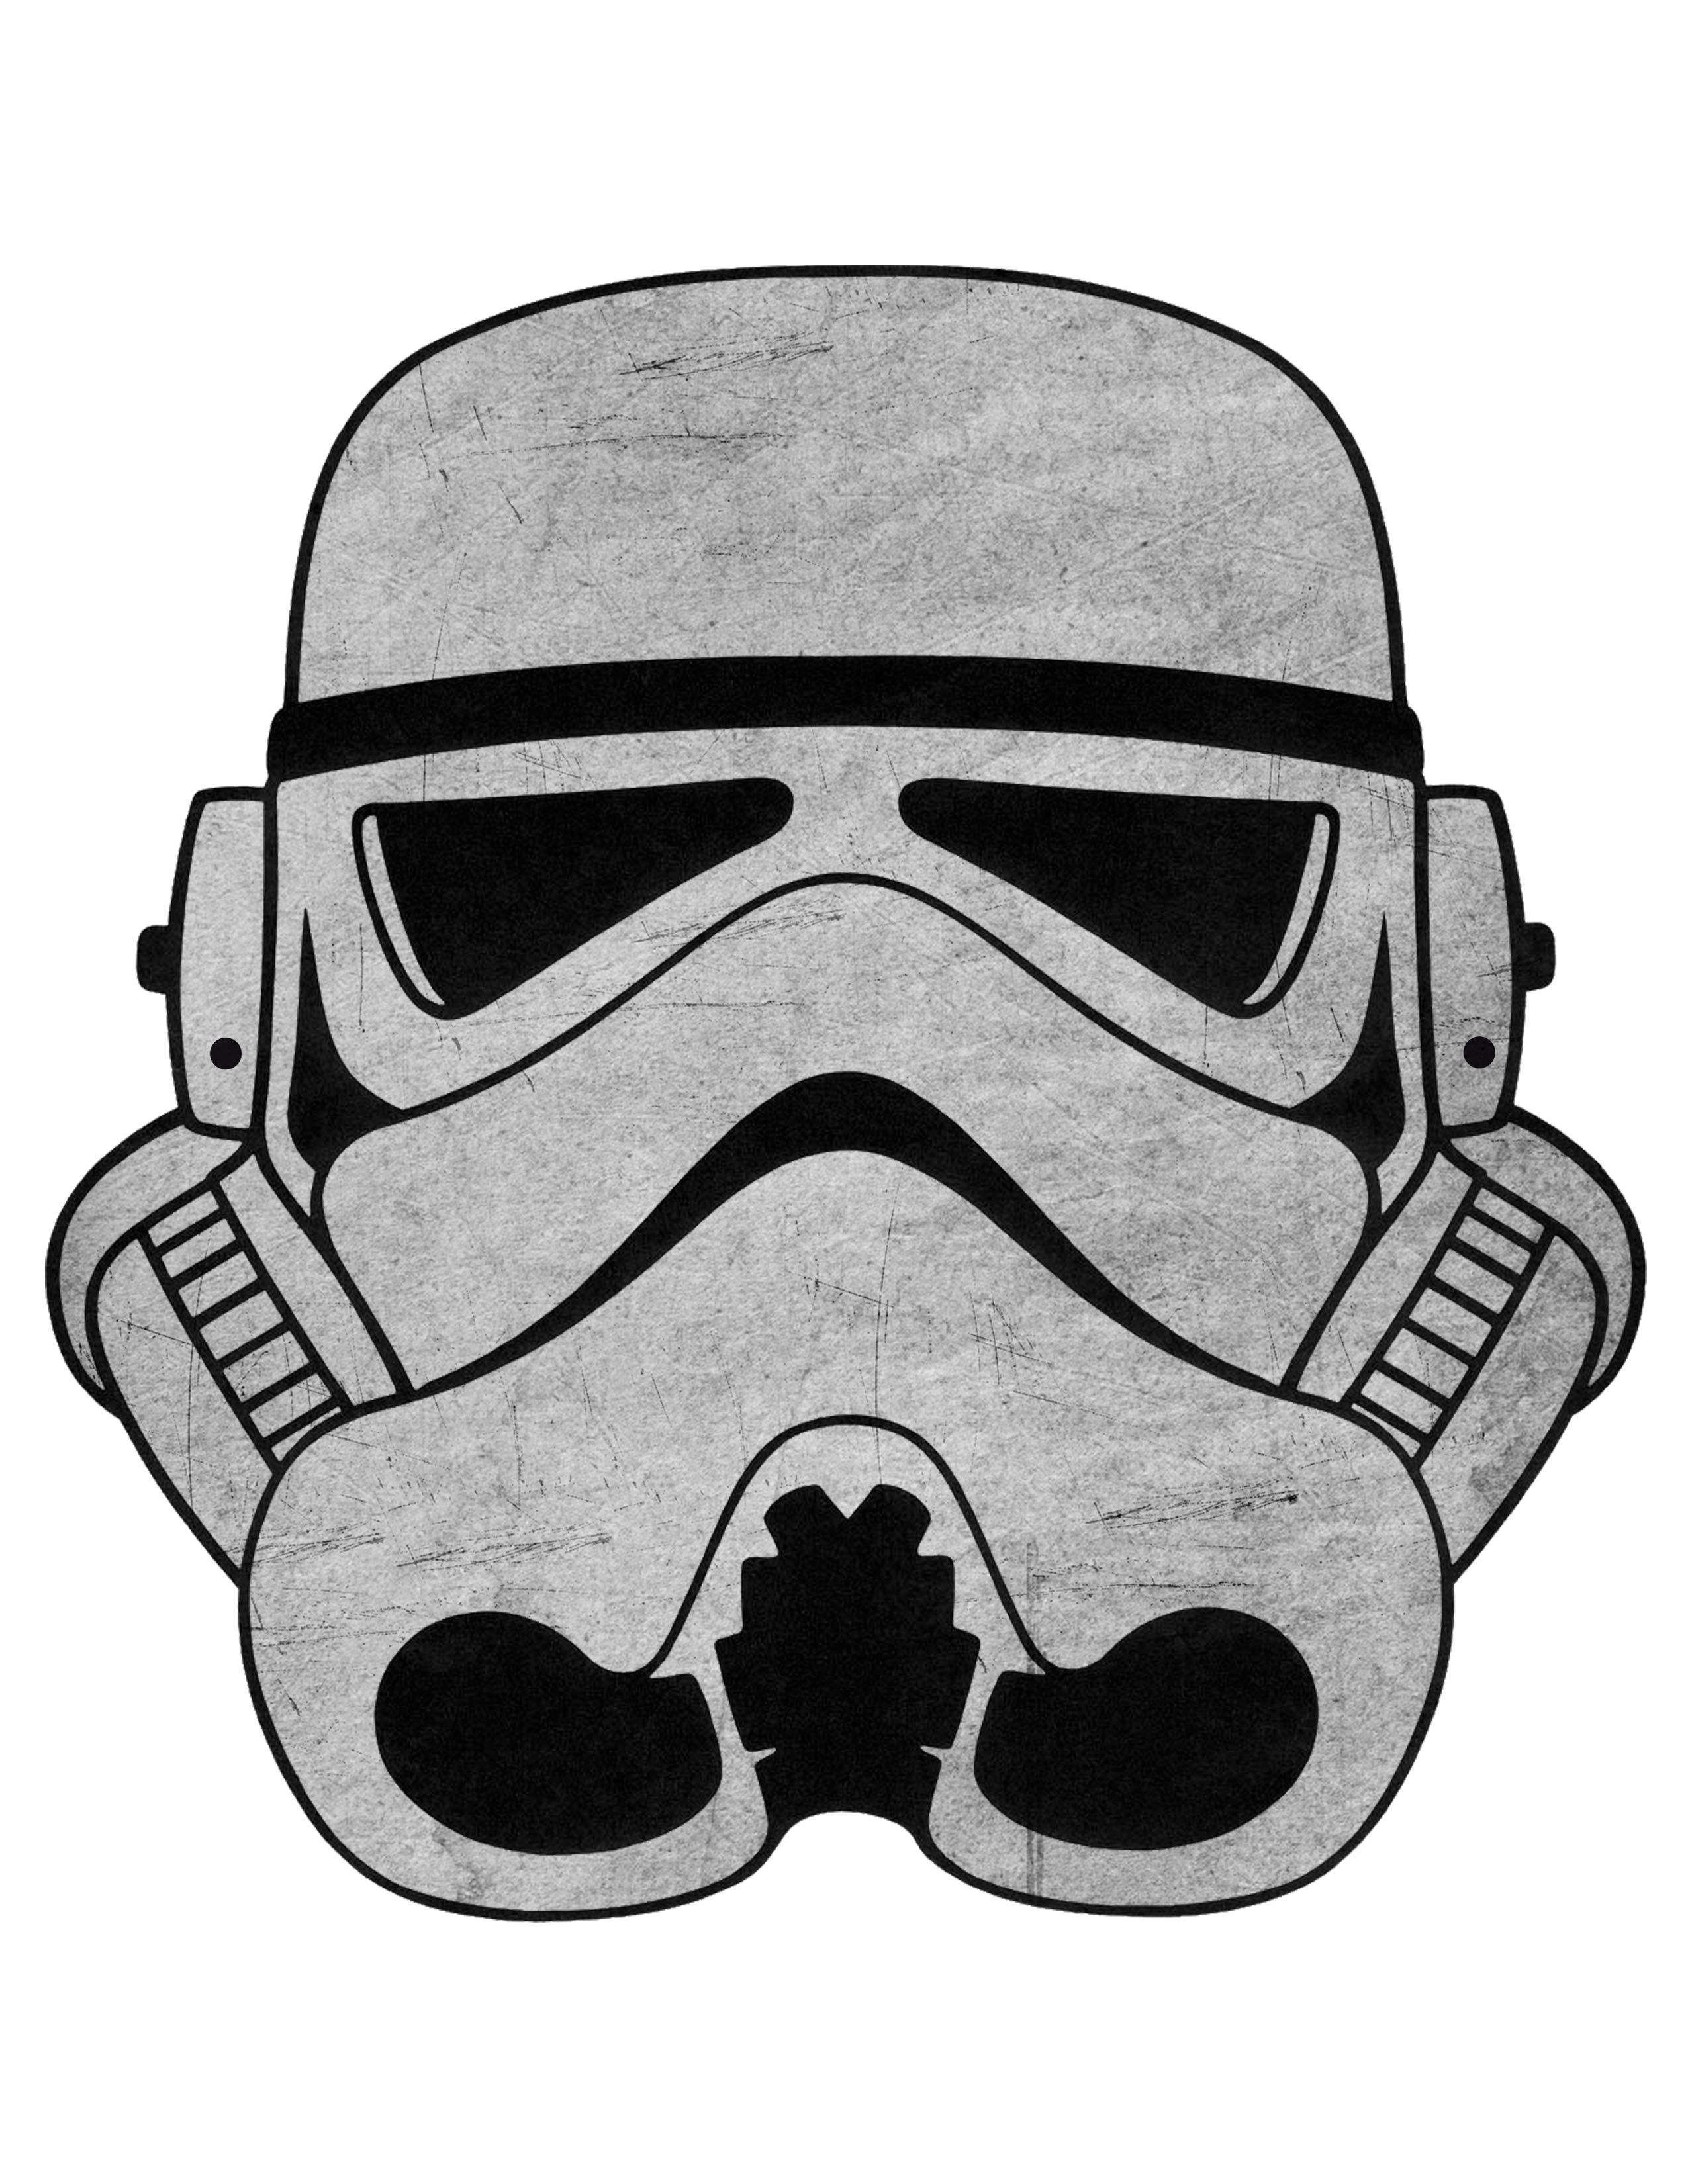 Stormtrooper Template Stormtrooper Mask Star Wars Masks Star